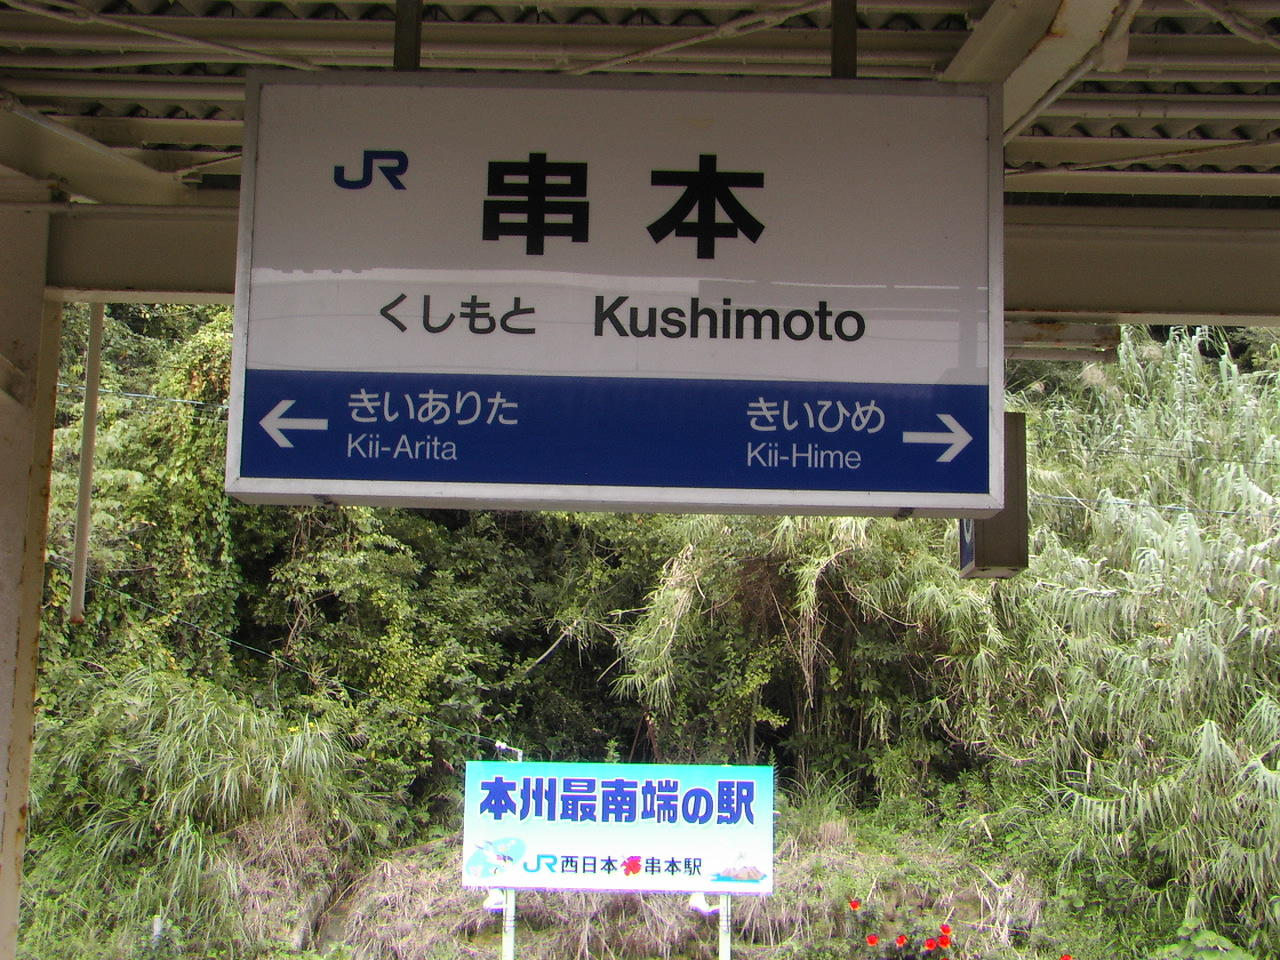 kushimoto chatrooms Meet yuasahiro (wakayama) women for online dating contact japanese girls without registration and payment you may email, chat, sms or call yuasahiro ladies instantly.